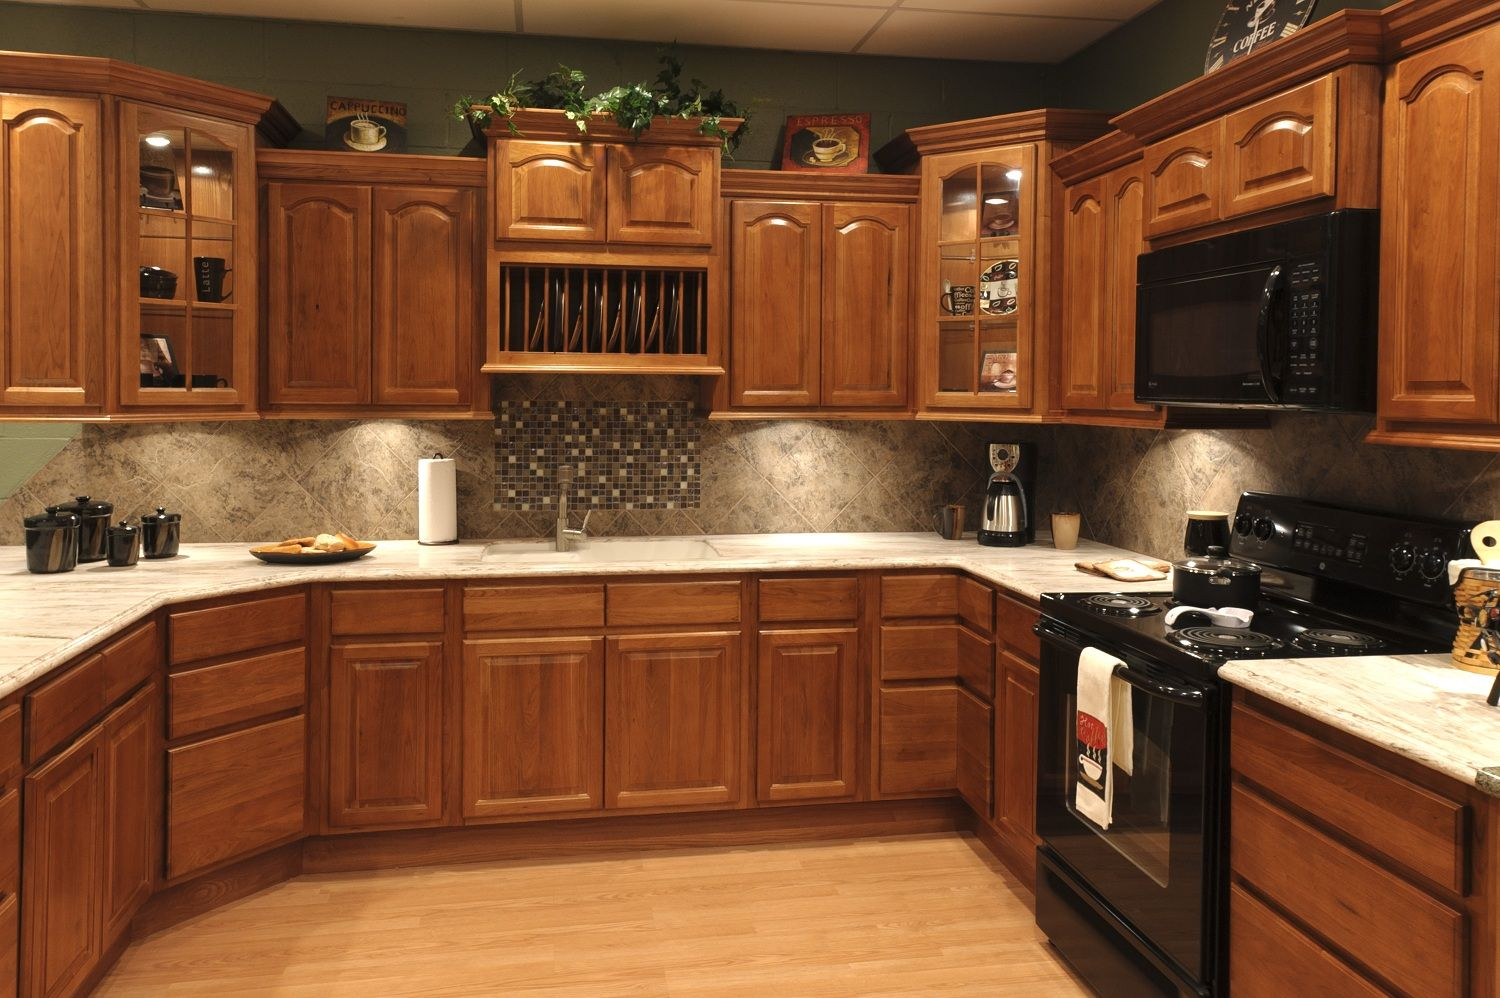 beautiful kitchen cabinets | windy hill hardwoods: beautiful jmark